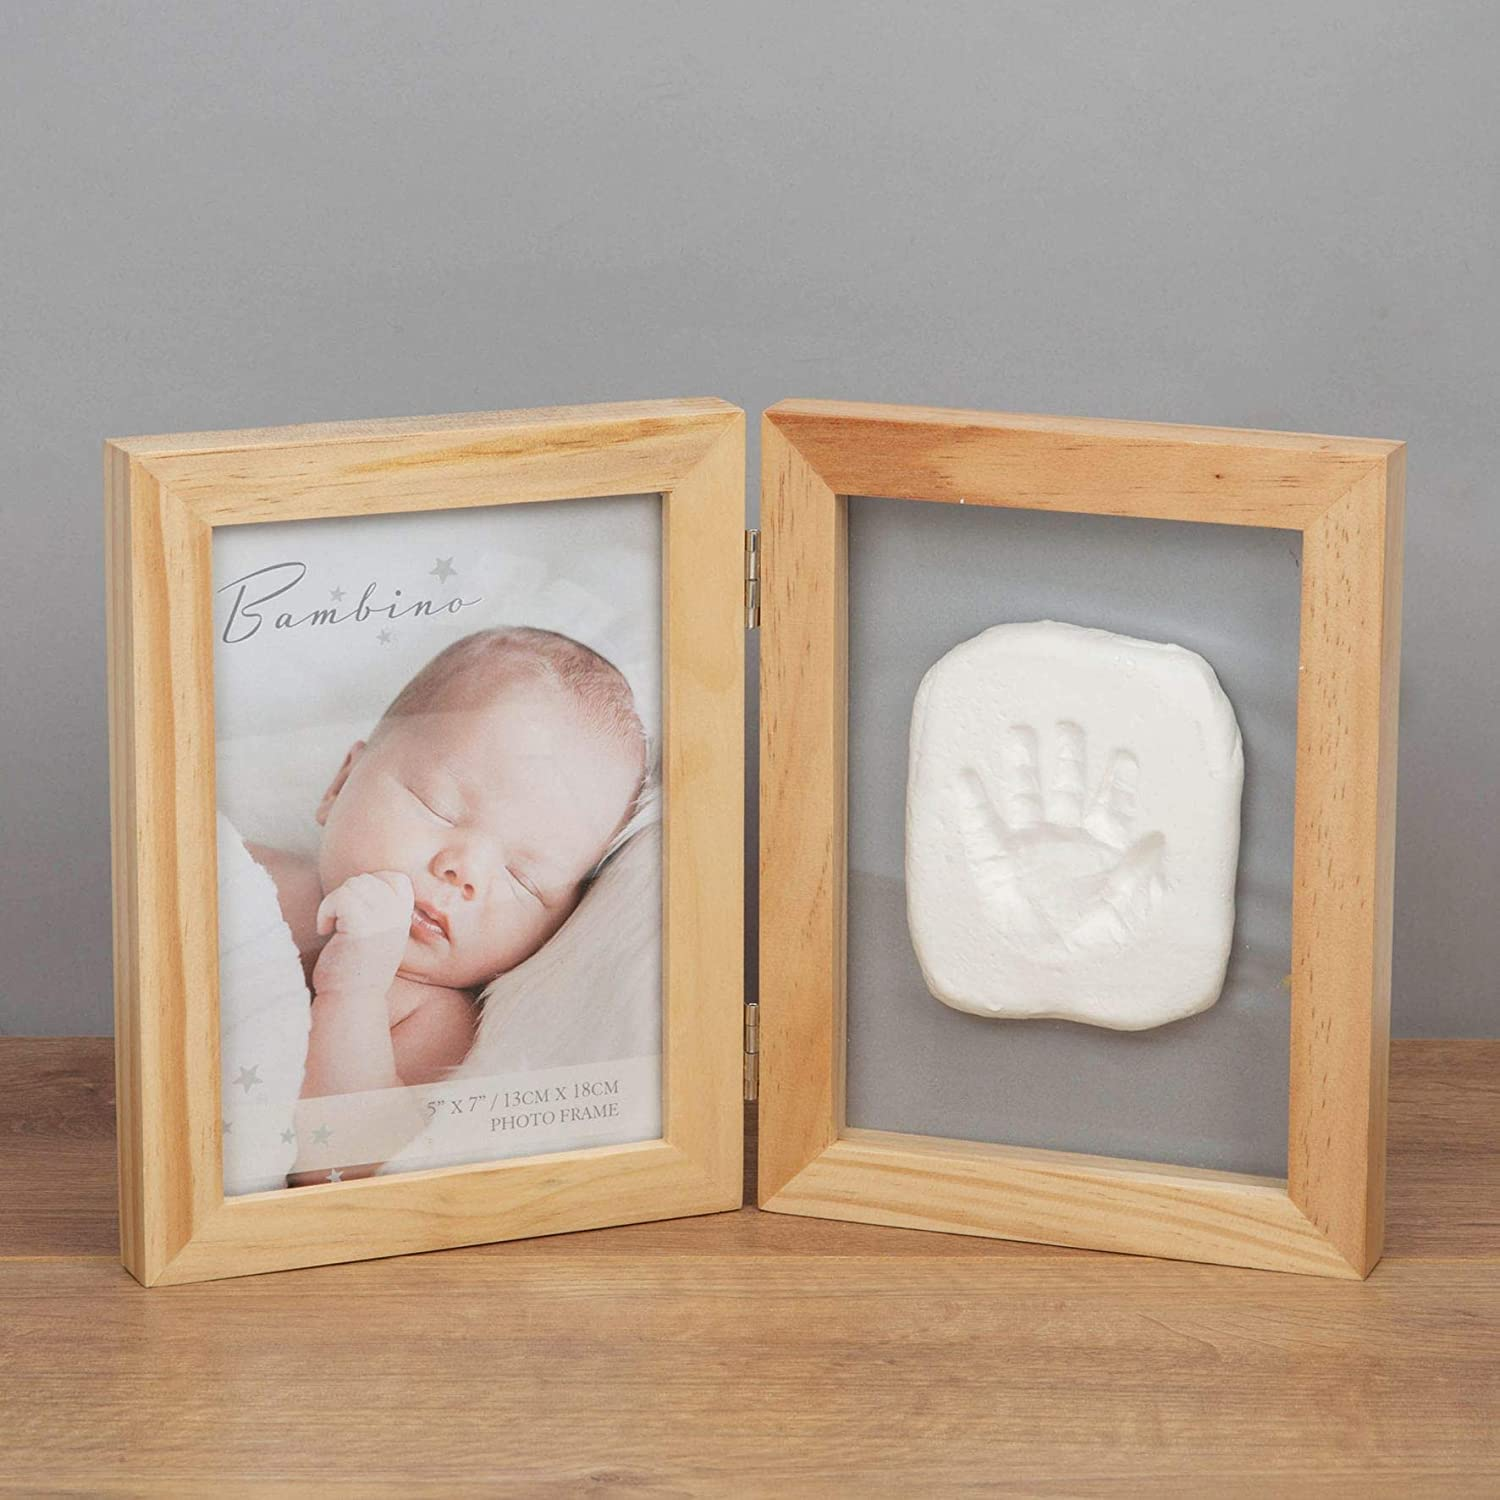 Bambino Natural Folding Frame /& Clay Print Kit The Gift Experience 5 x 7